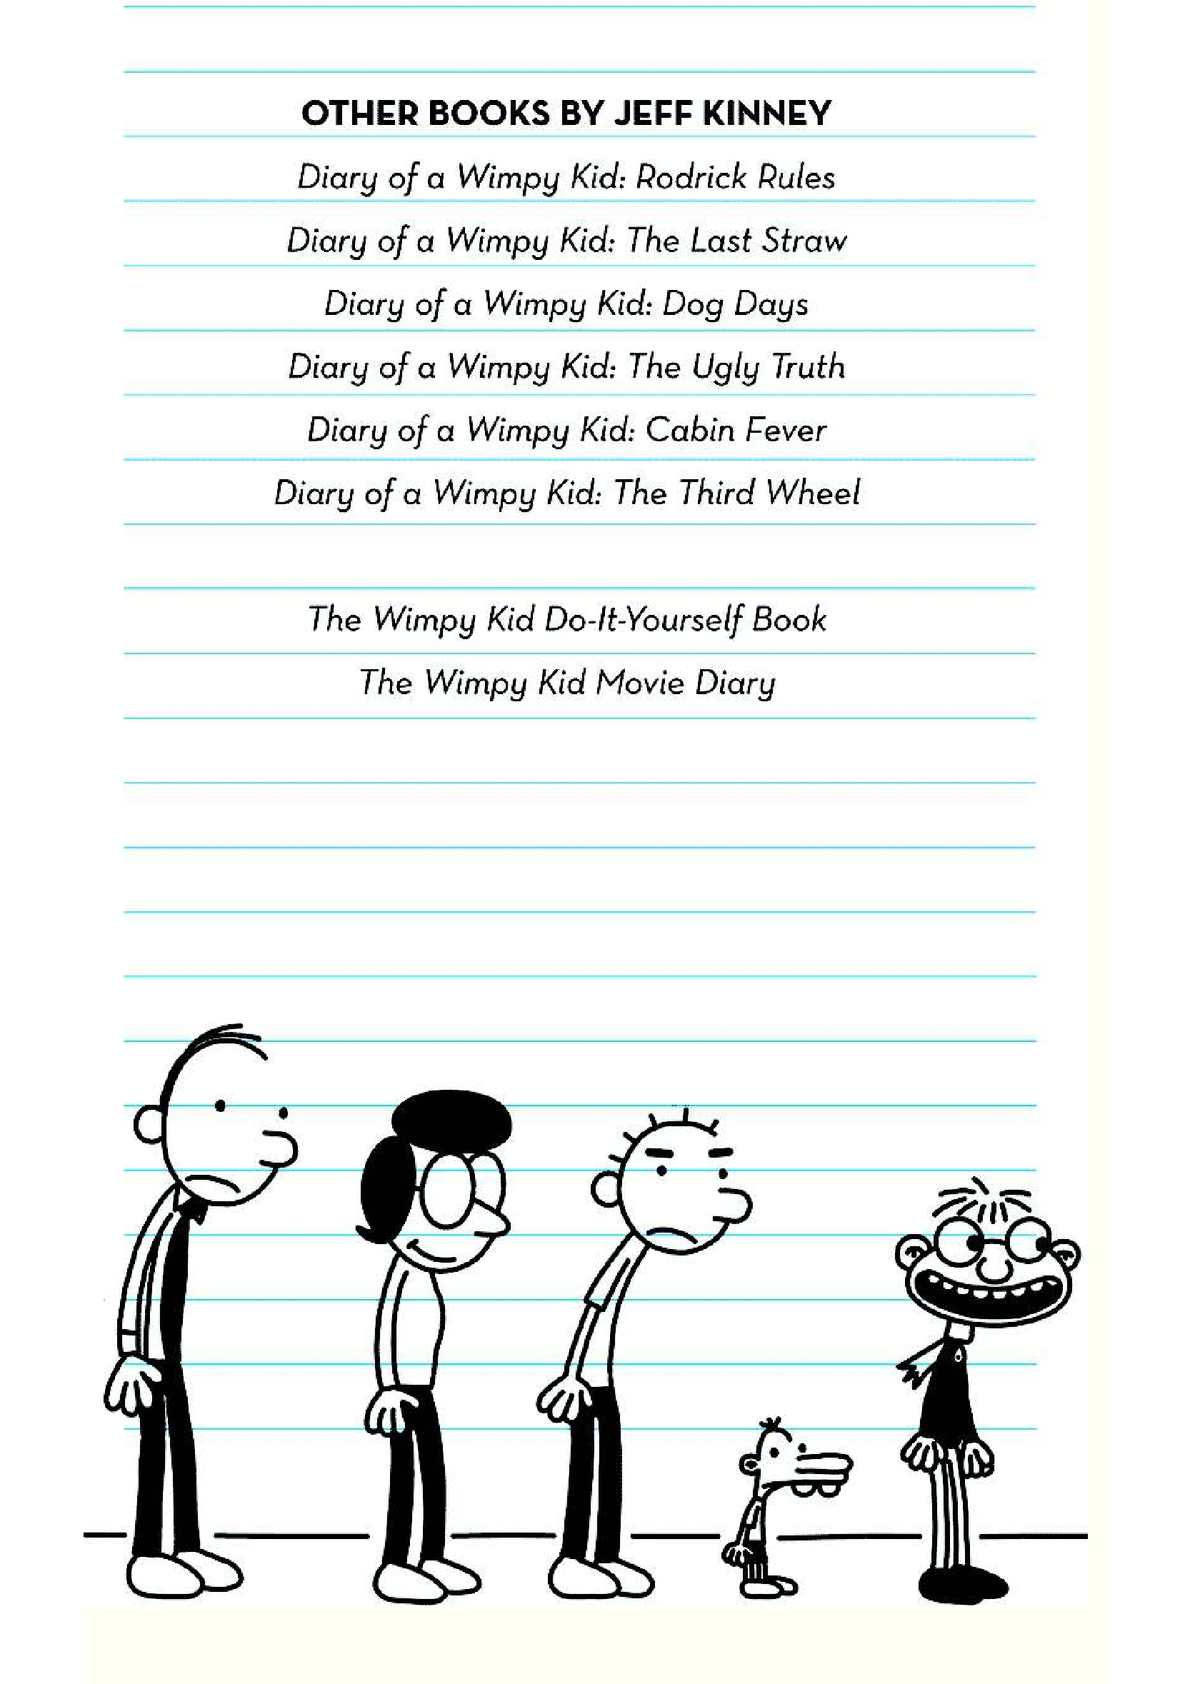 Diary of a wimpy kid 1 calameo downloader page 5 solutioingenieria Choice Image